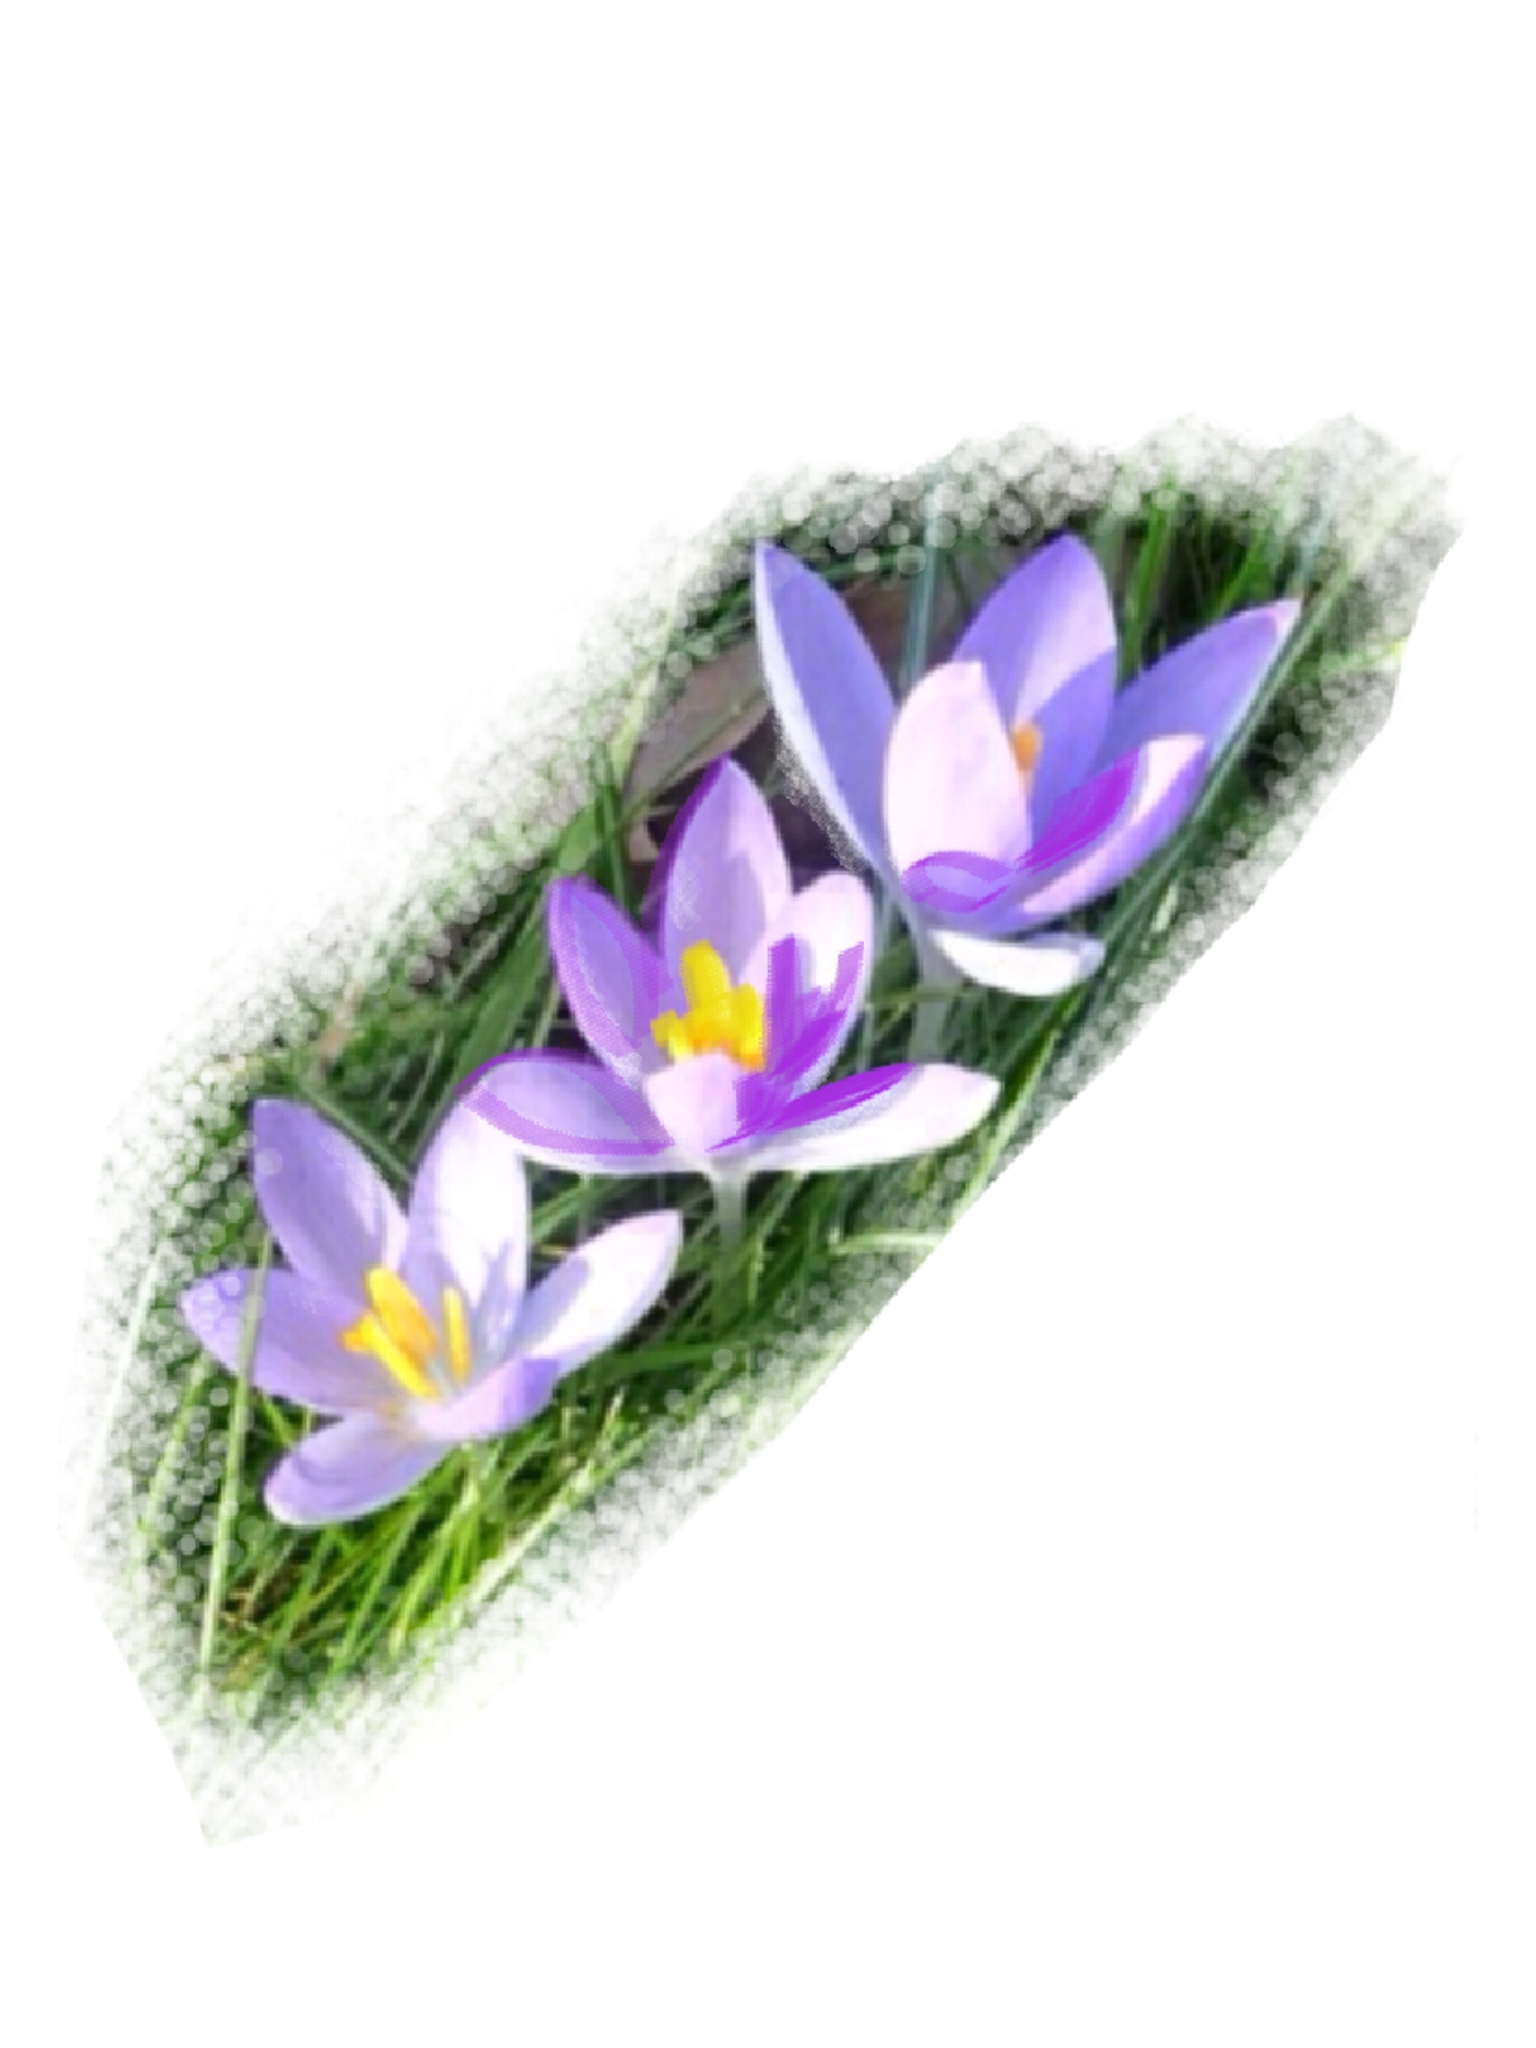 Crocuses, David Oppenheim, Digital Drawing over Photograph